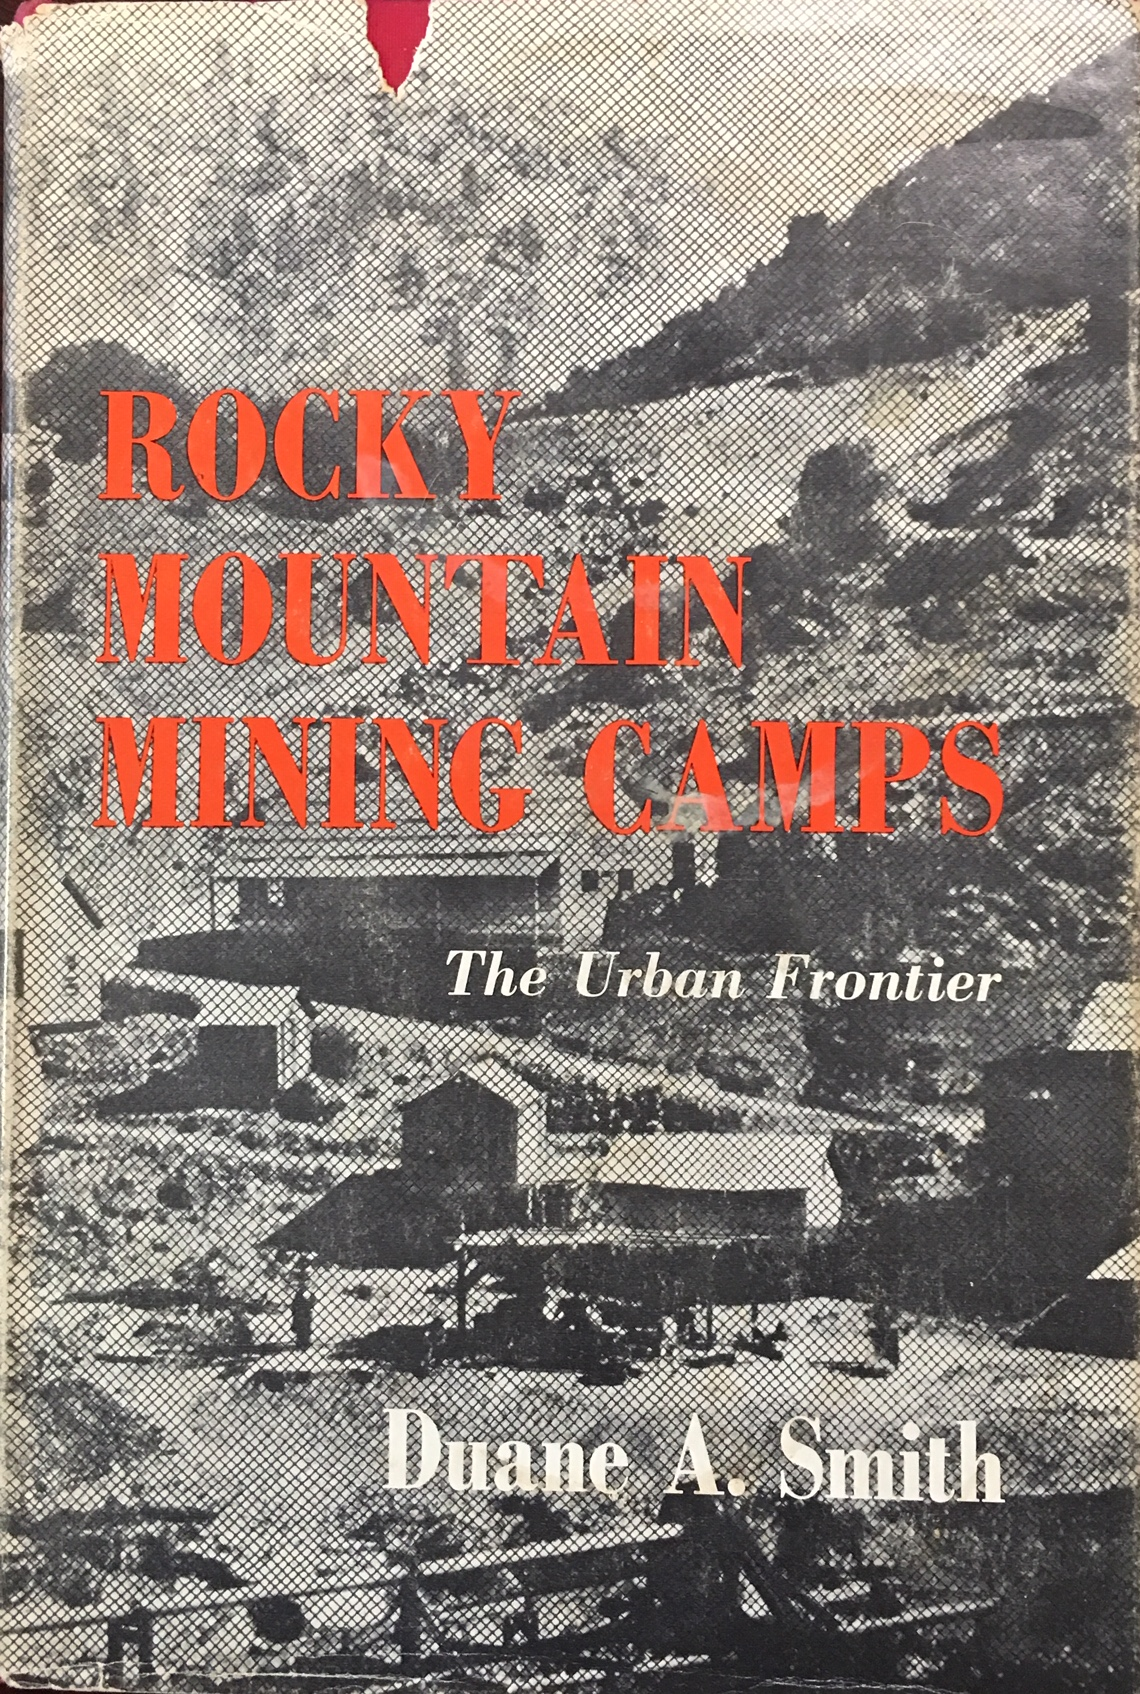 Image for Rocky Mountain Mining Camps: The Urban Frontier